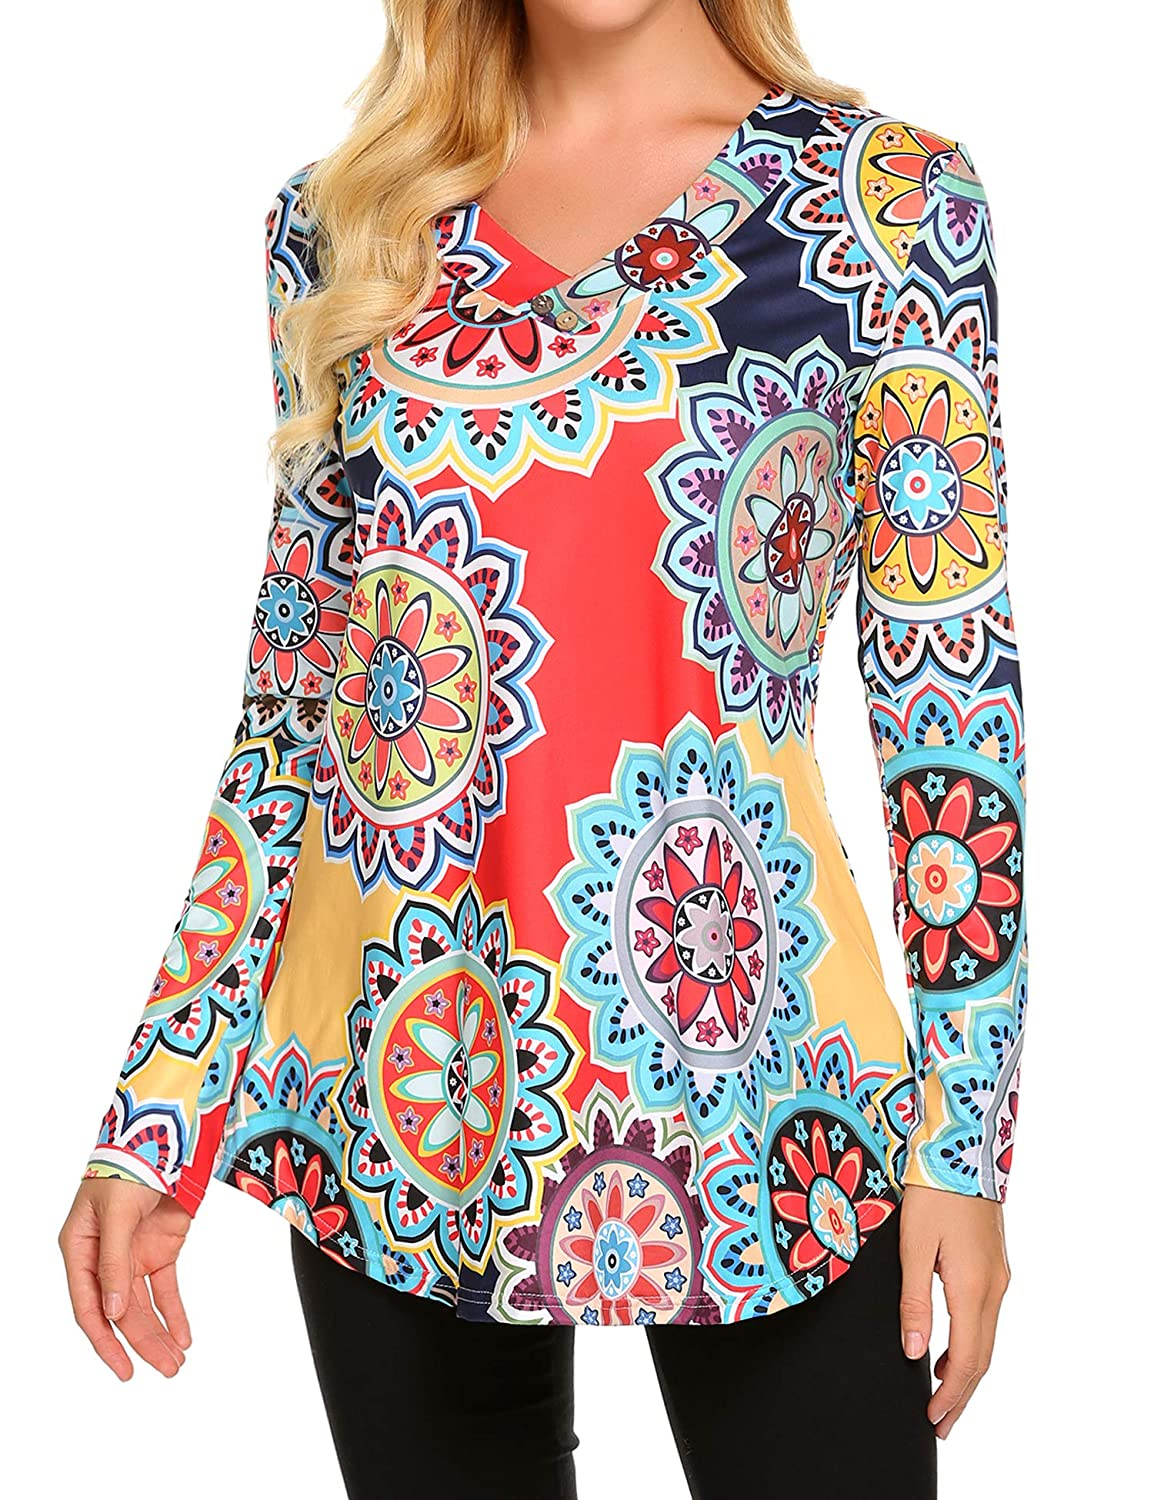 Long Sleeve Navy bluee Sweetnight Women Floral Print V Neck Button Decor Peasant Summer Swing Tunic Tops Shirts